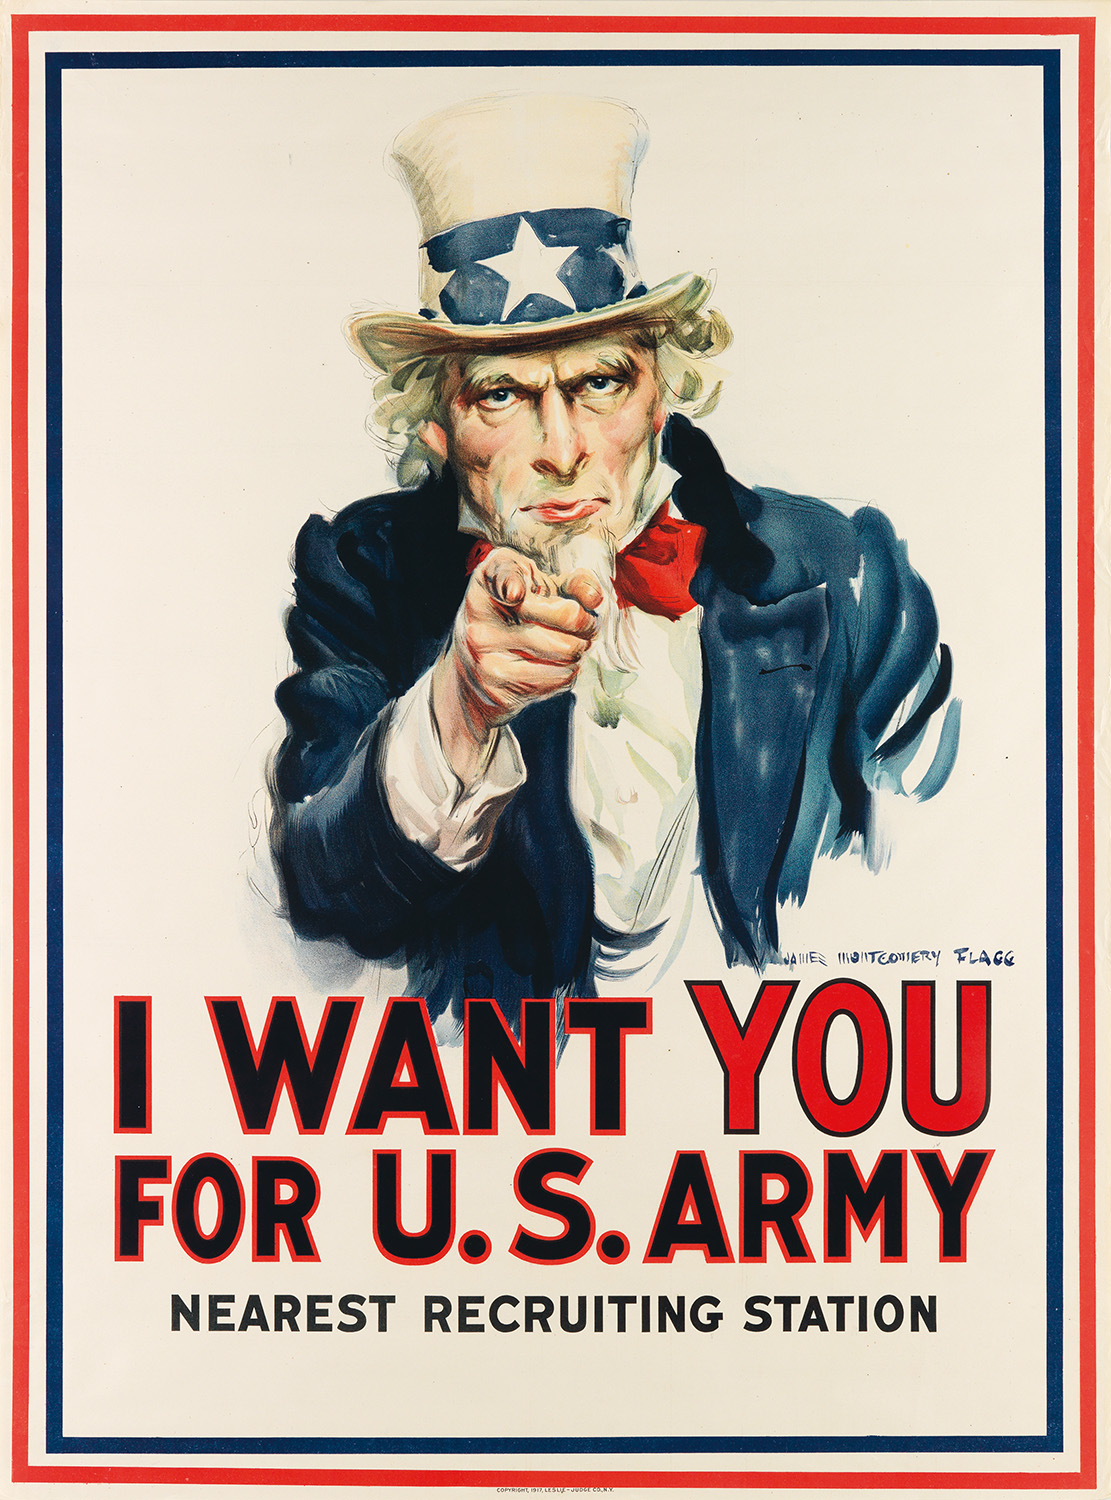 A 1917 American recruiting poster for World War I, illustrated by James Montgomery Flagg.